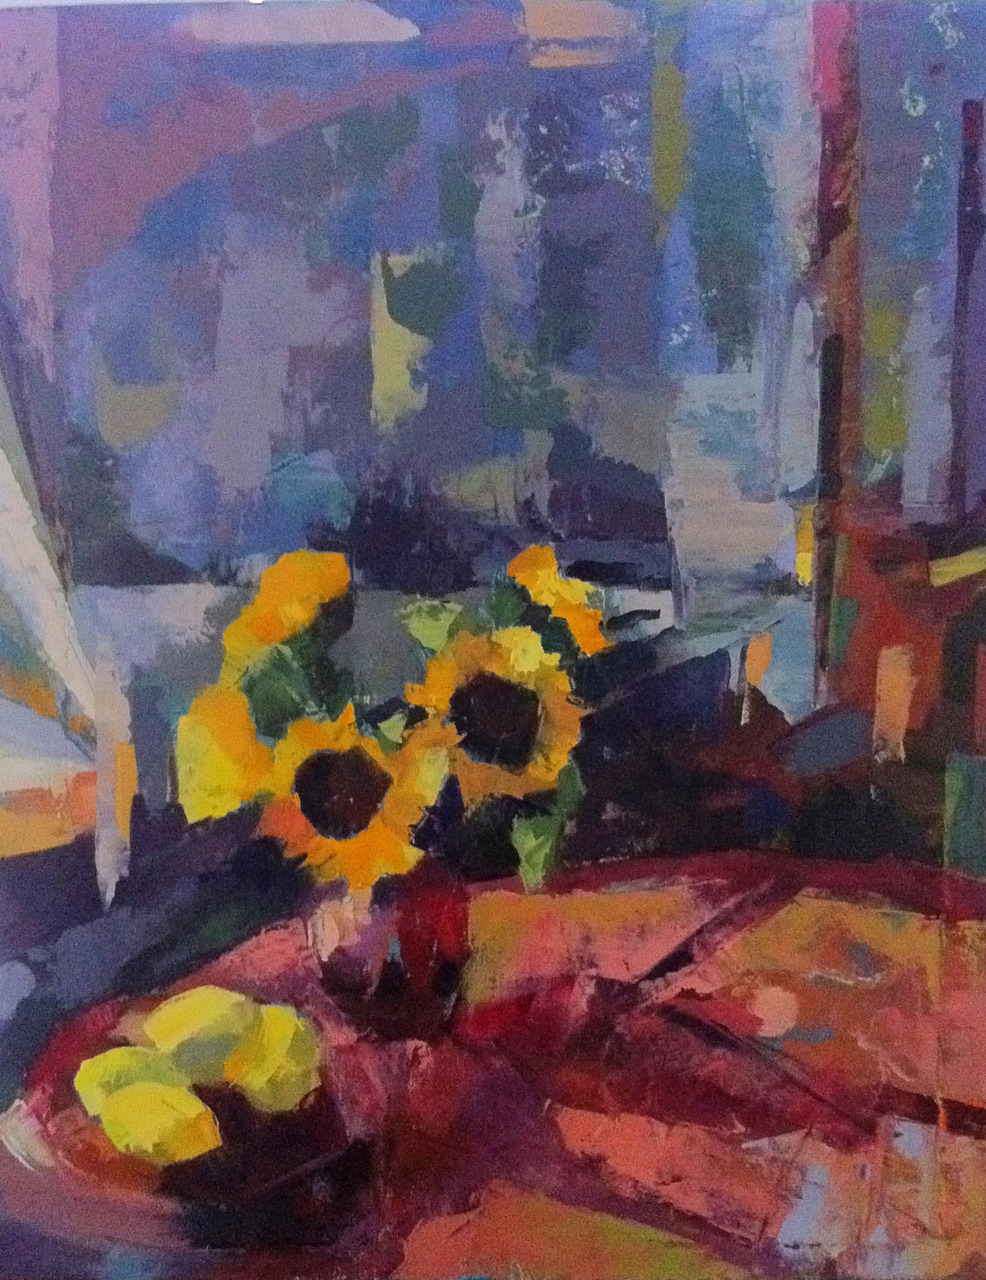 """Sunny Things, 16"""" x 20"""", oil on canvas. I had  my class  doing paintings of this set up and made them do it all in palette knife. It was a really fun exercise. They didn't have as much time as I did, and I did use brush as well as knife. After I finished, I realized this painting reminds me a lot of a larger piece I did a while back called  """"Mandarin Moon"""" ; the background mostly, but also the mark-making."""